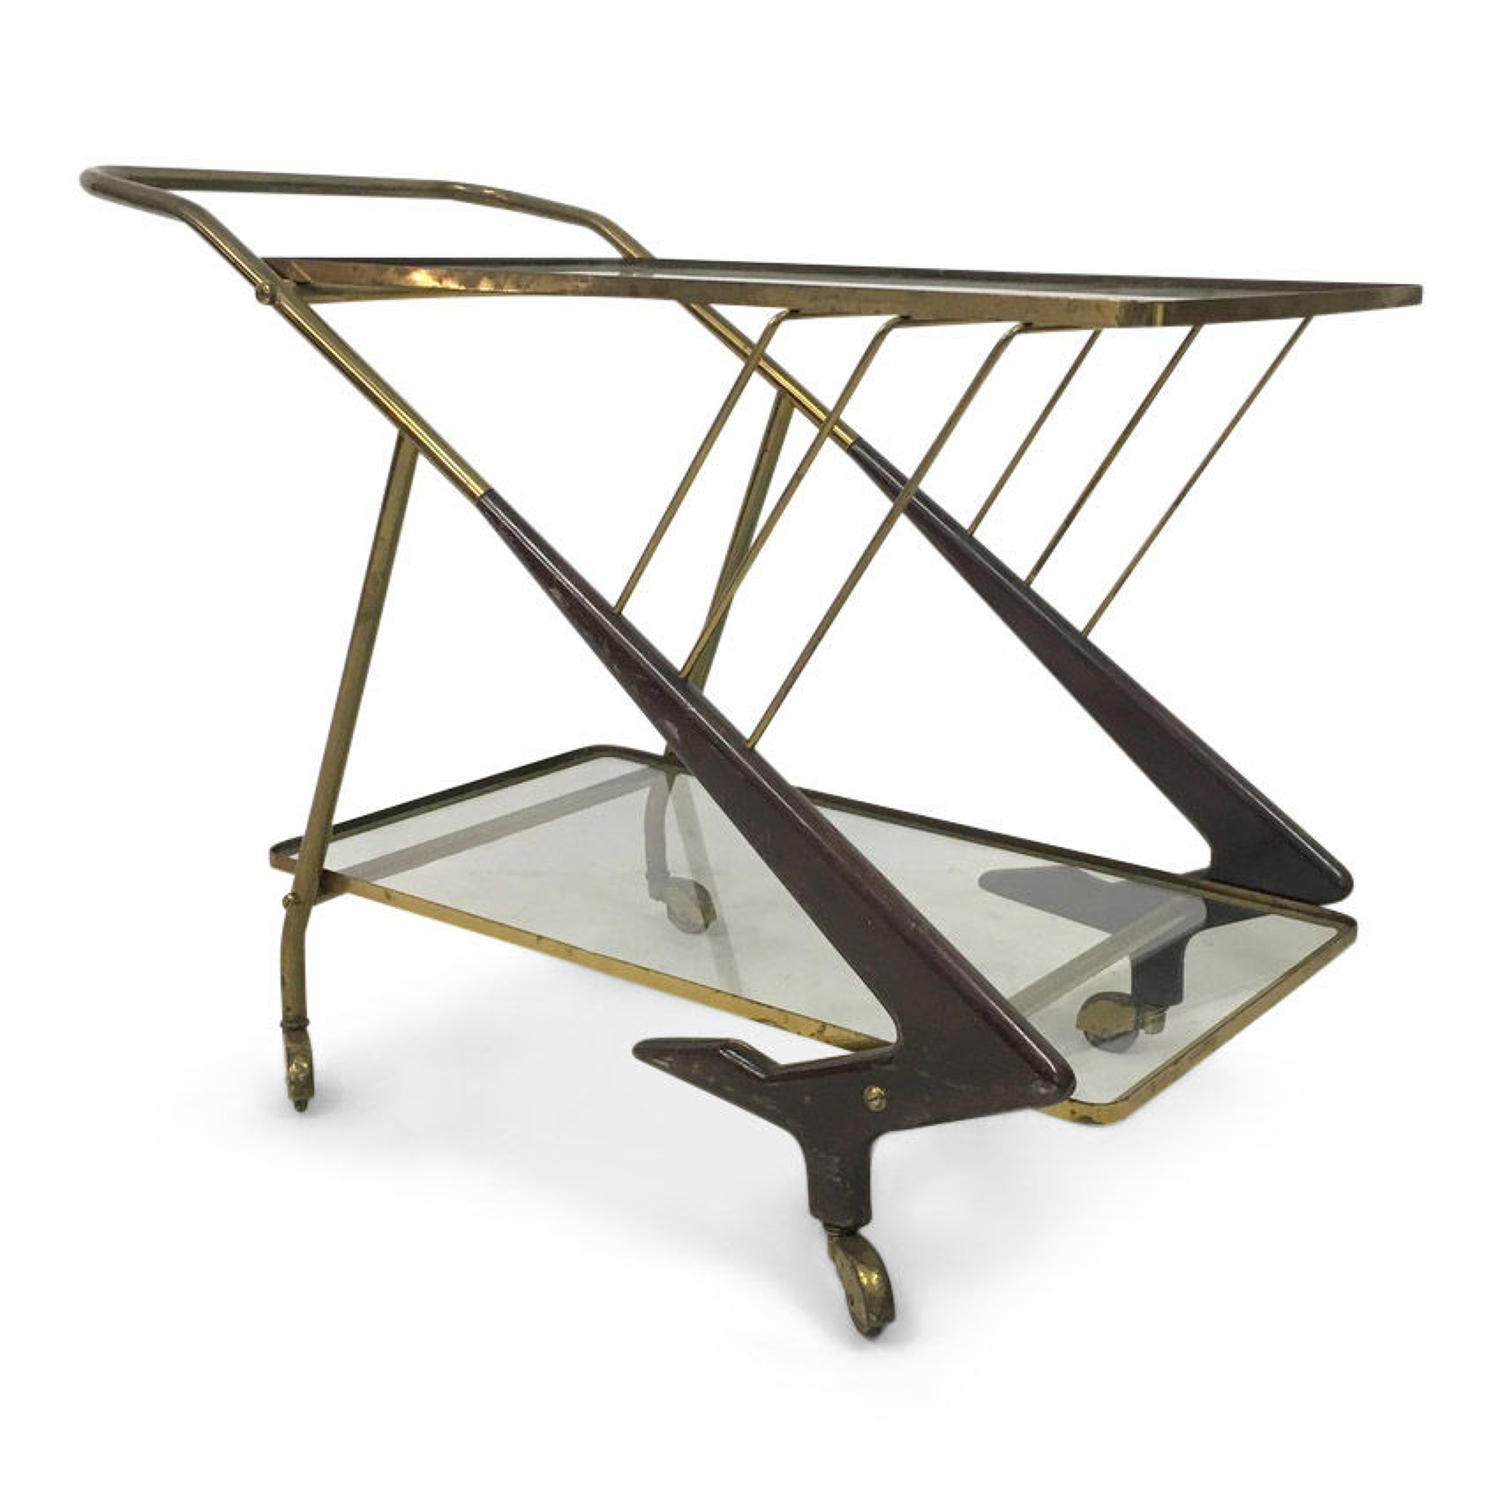 1950s Italian brass and wood drinks trolley or bar cart